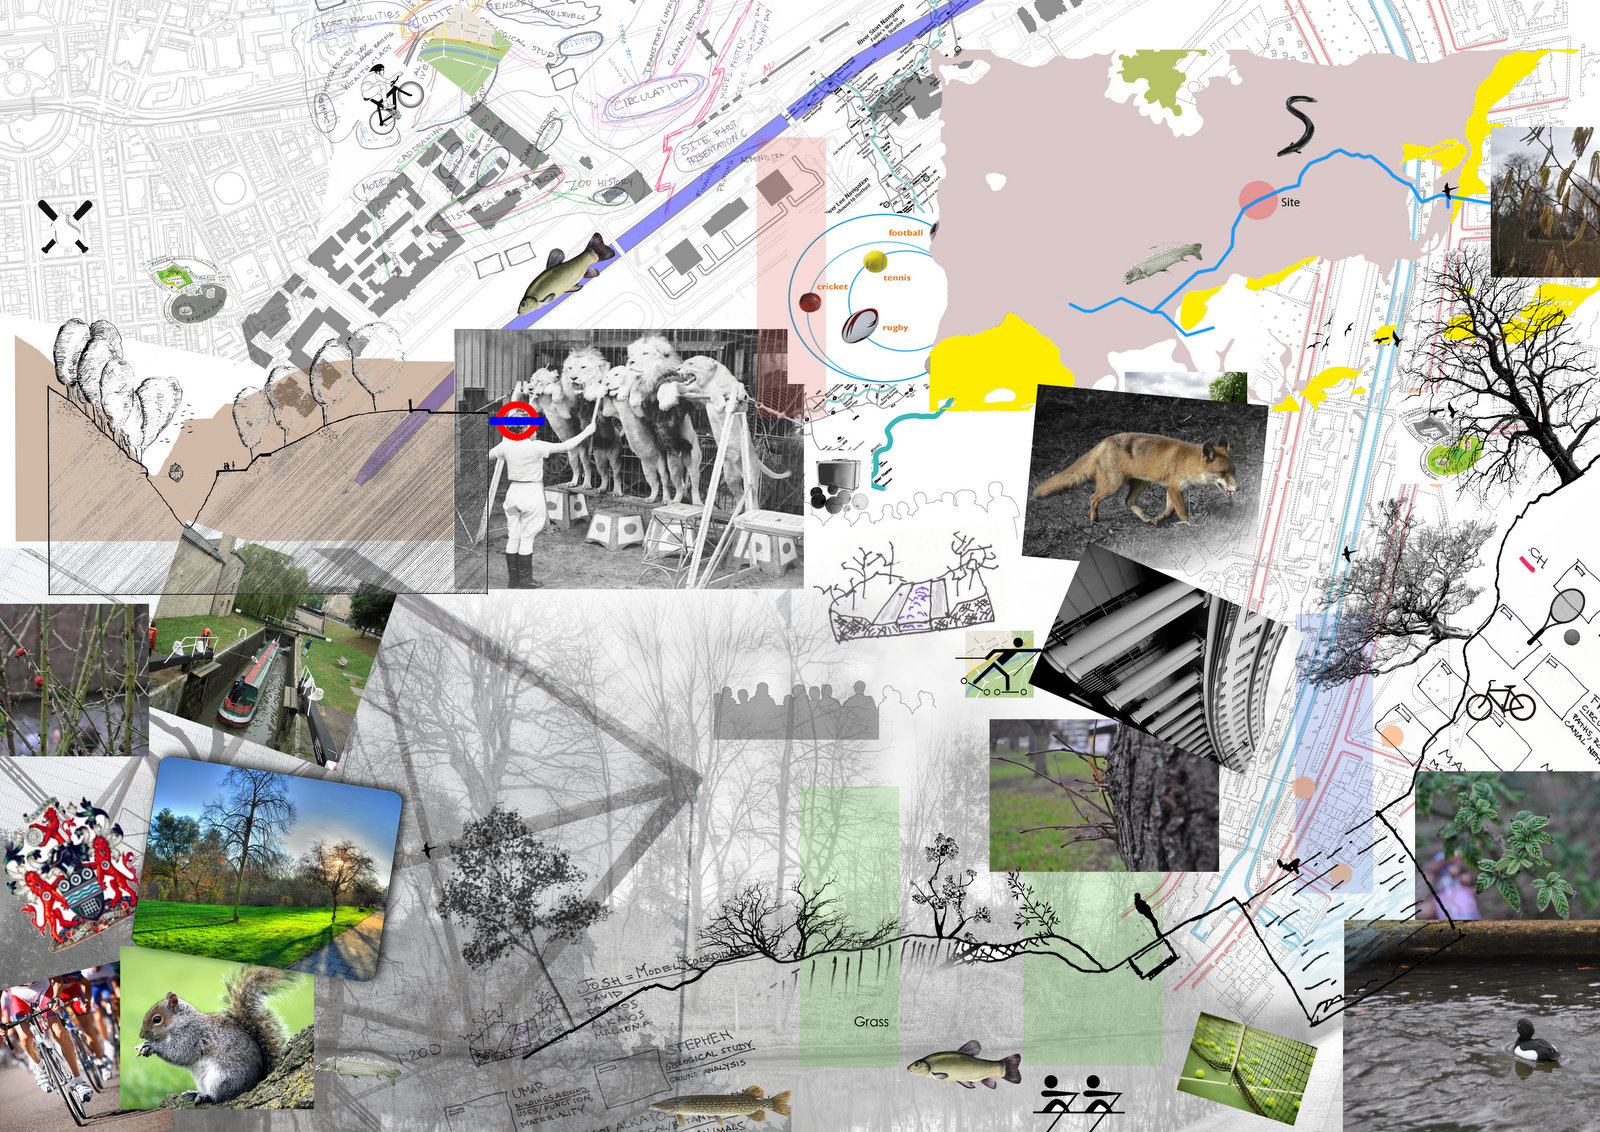 Architecture Design Webfolio: Year 2, Sense of Place, Group Site ...